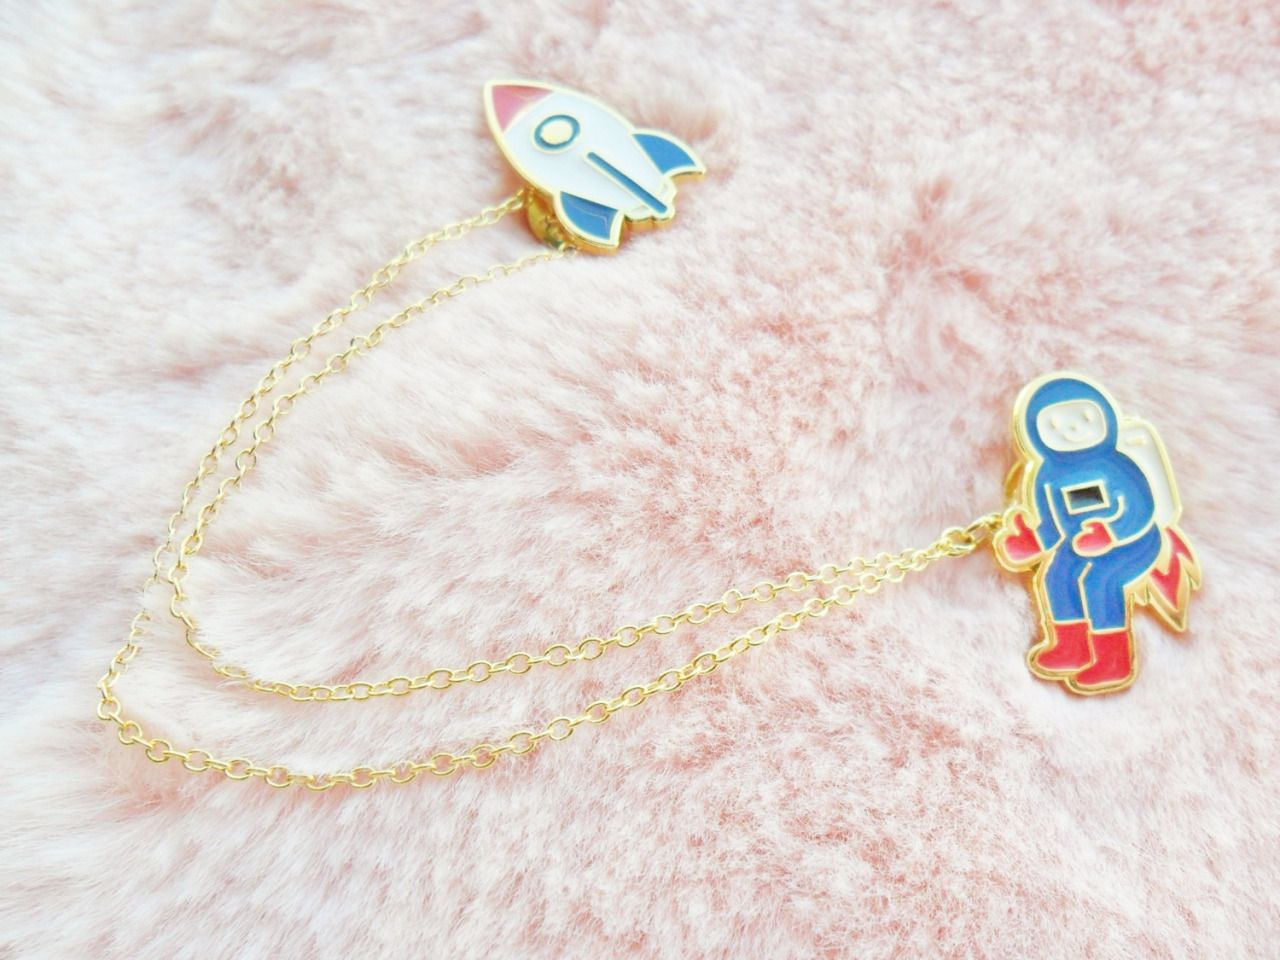 Pins by Hoodratroughdiamond on Etsy • So Super... |